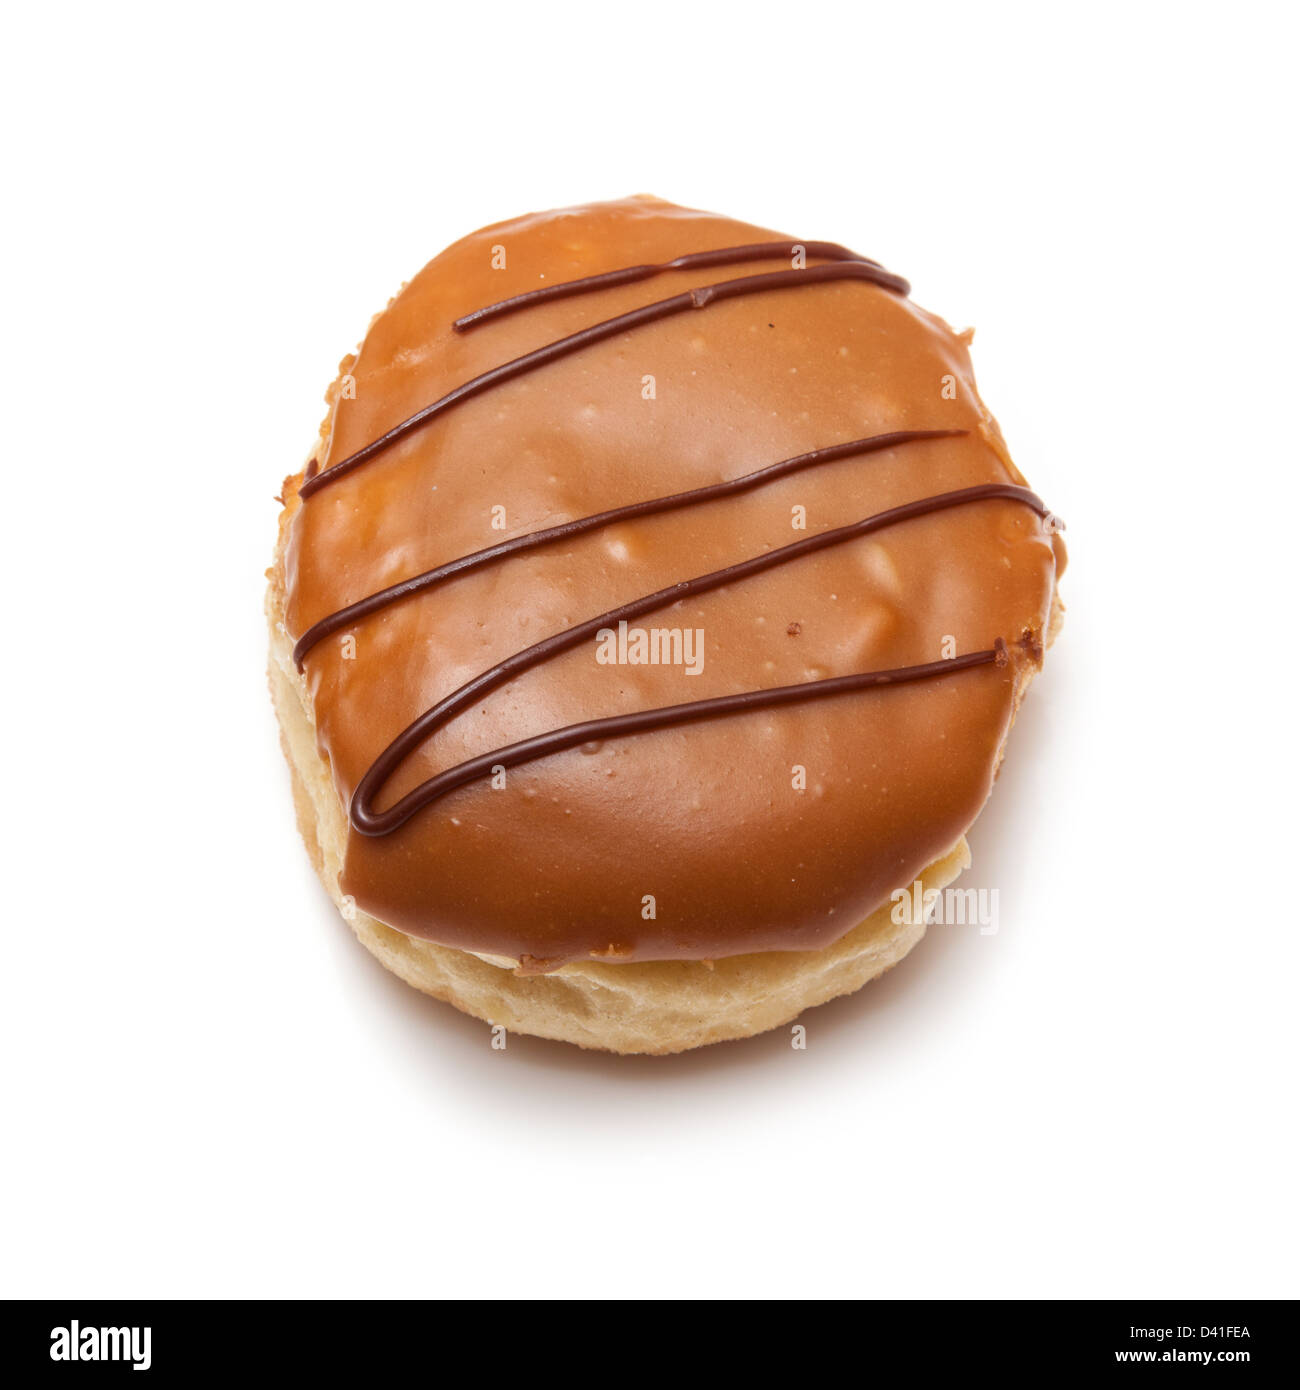 Iced donut isolated on a white studio background. Stock Photo